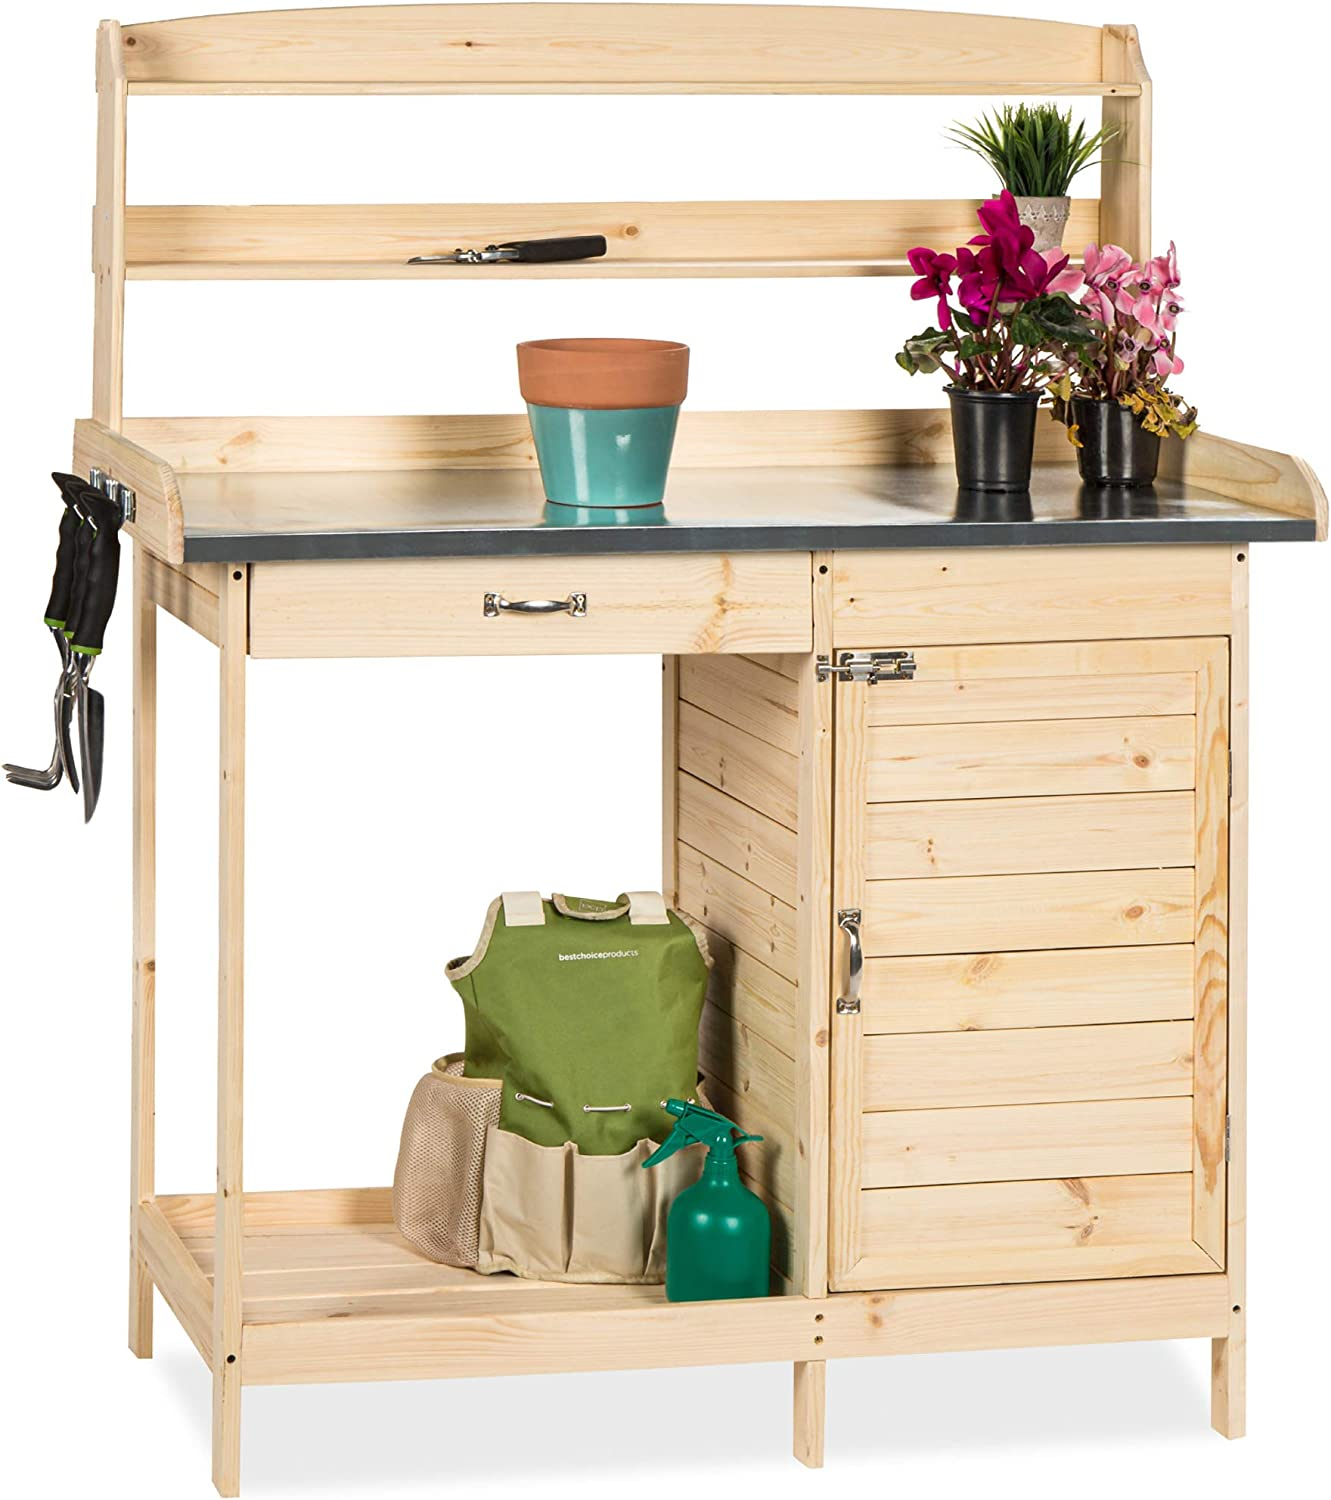 Best Choice Products Outdoor Garden Wooden Potting Bench Work Station w/Metal Tabletop, Cabinet, Sliding Drawer, and Large Bottom Shelf, Natural